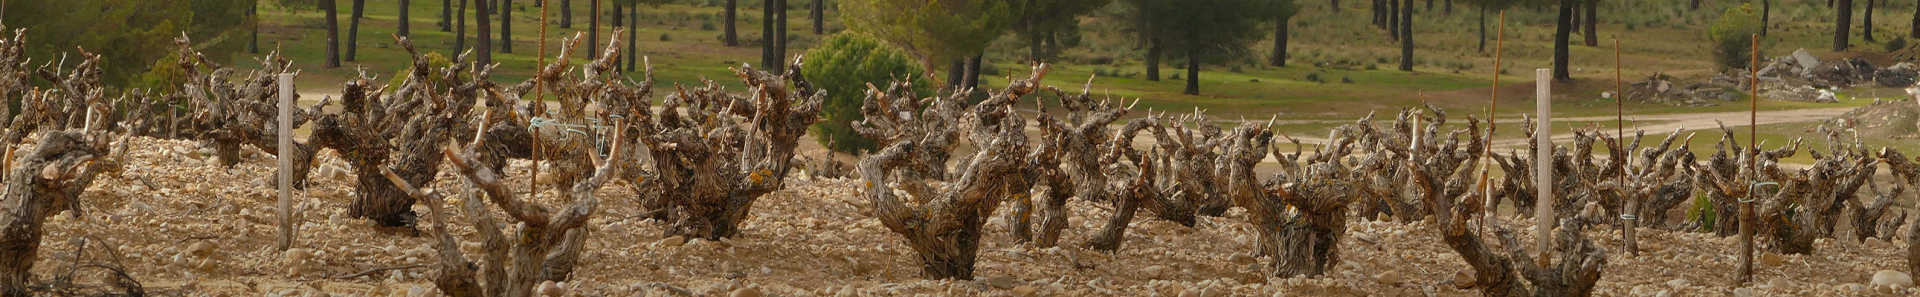 Image for Ribera del Duero Wine Spain content section